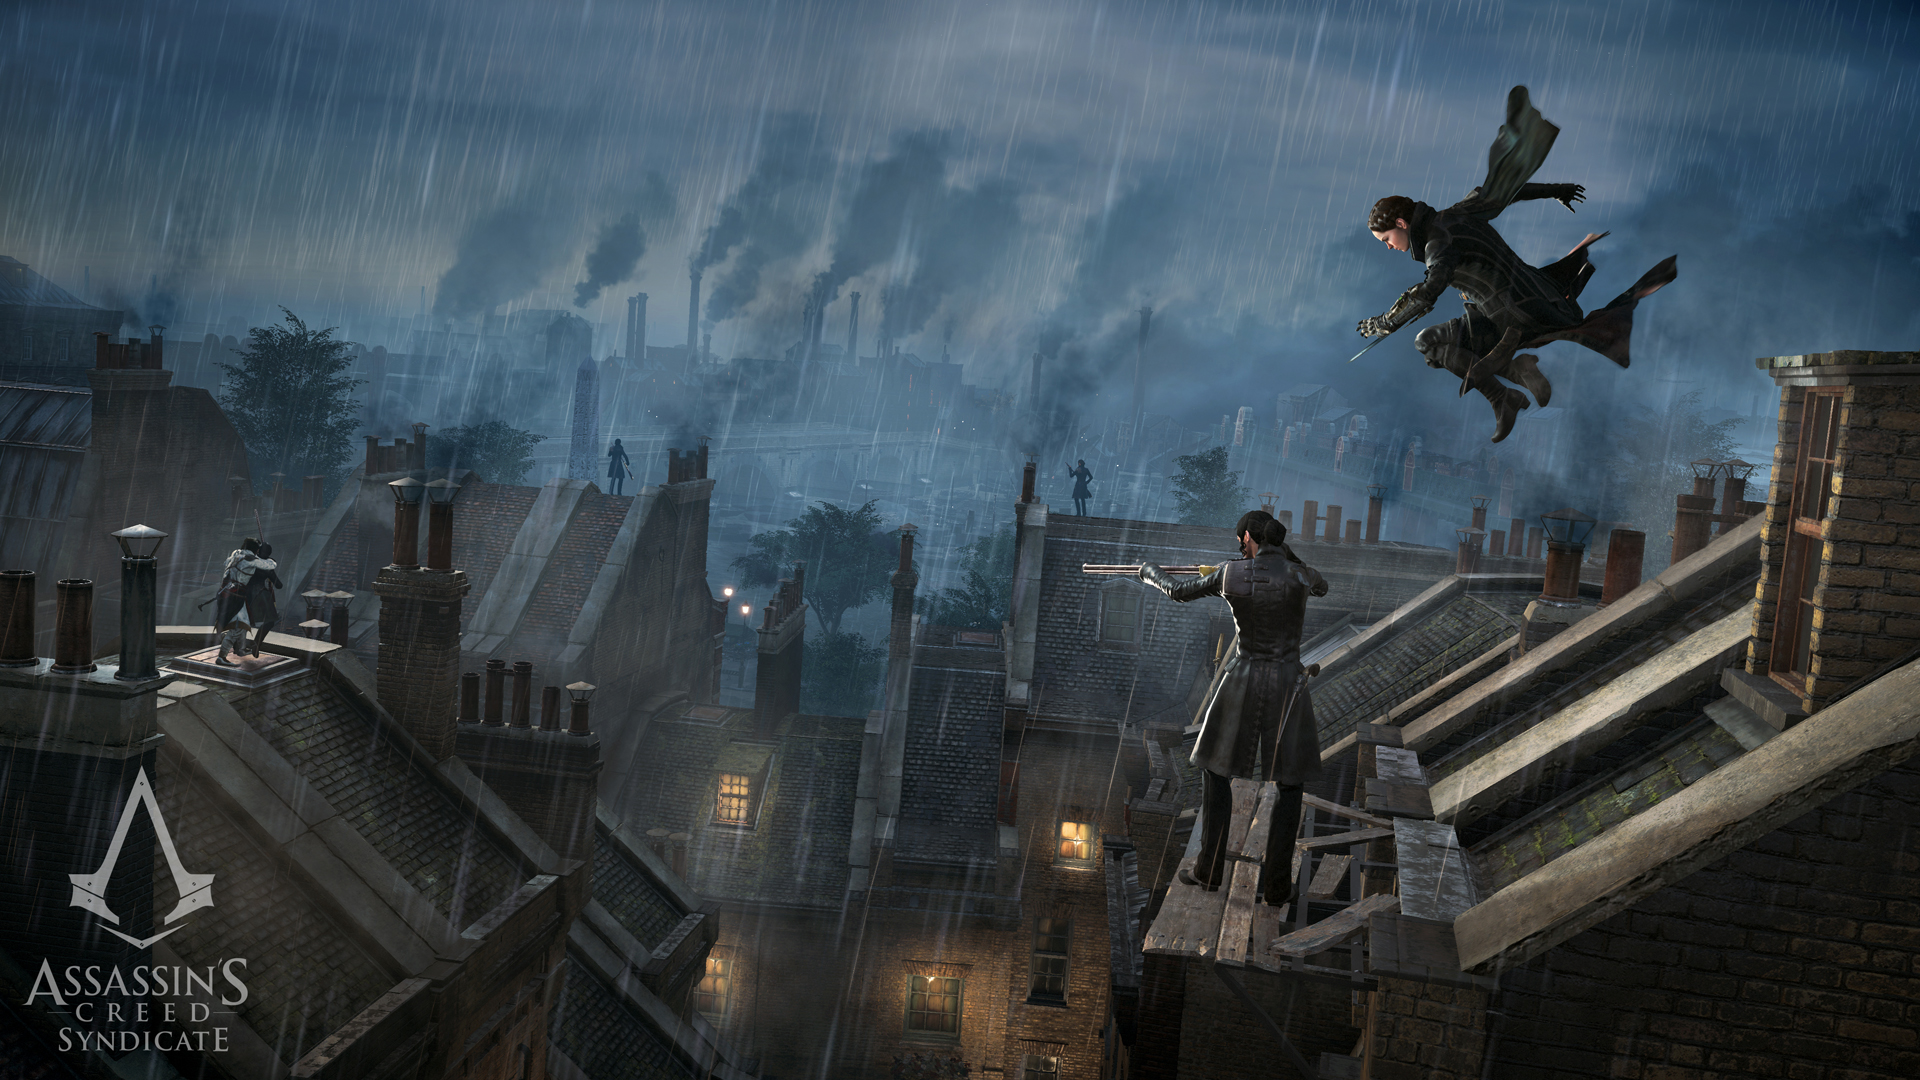 Assassins Creed Syndicate Wallpaper Posted By Ryan Sellers